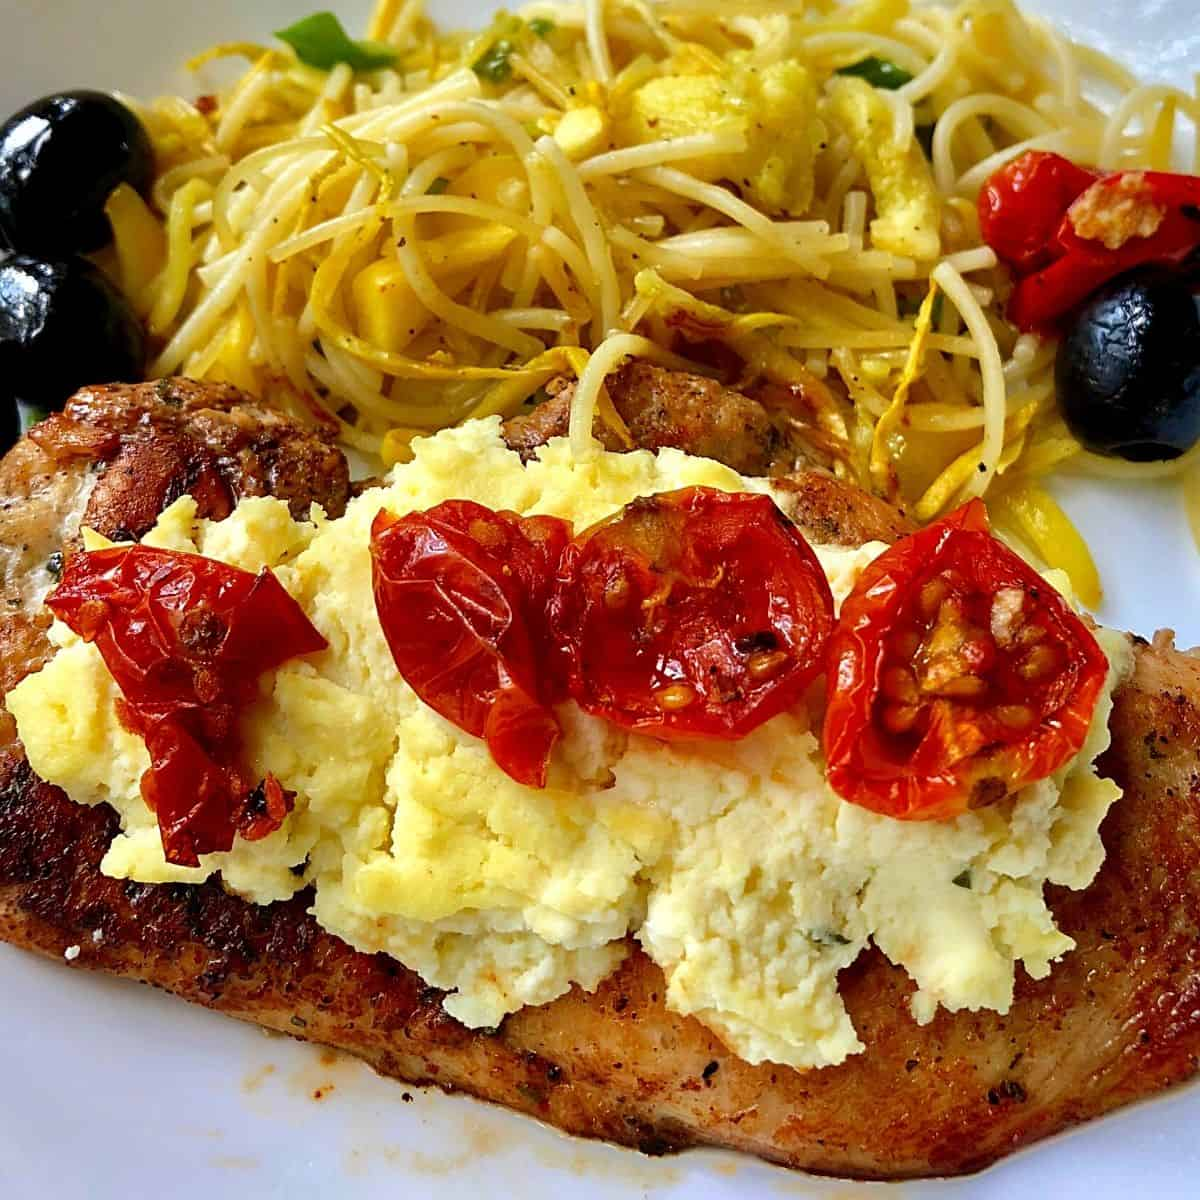 chicken breast with ricotta and tomatoes on white plate